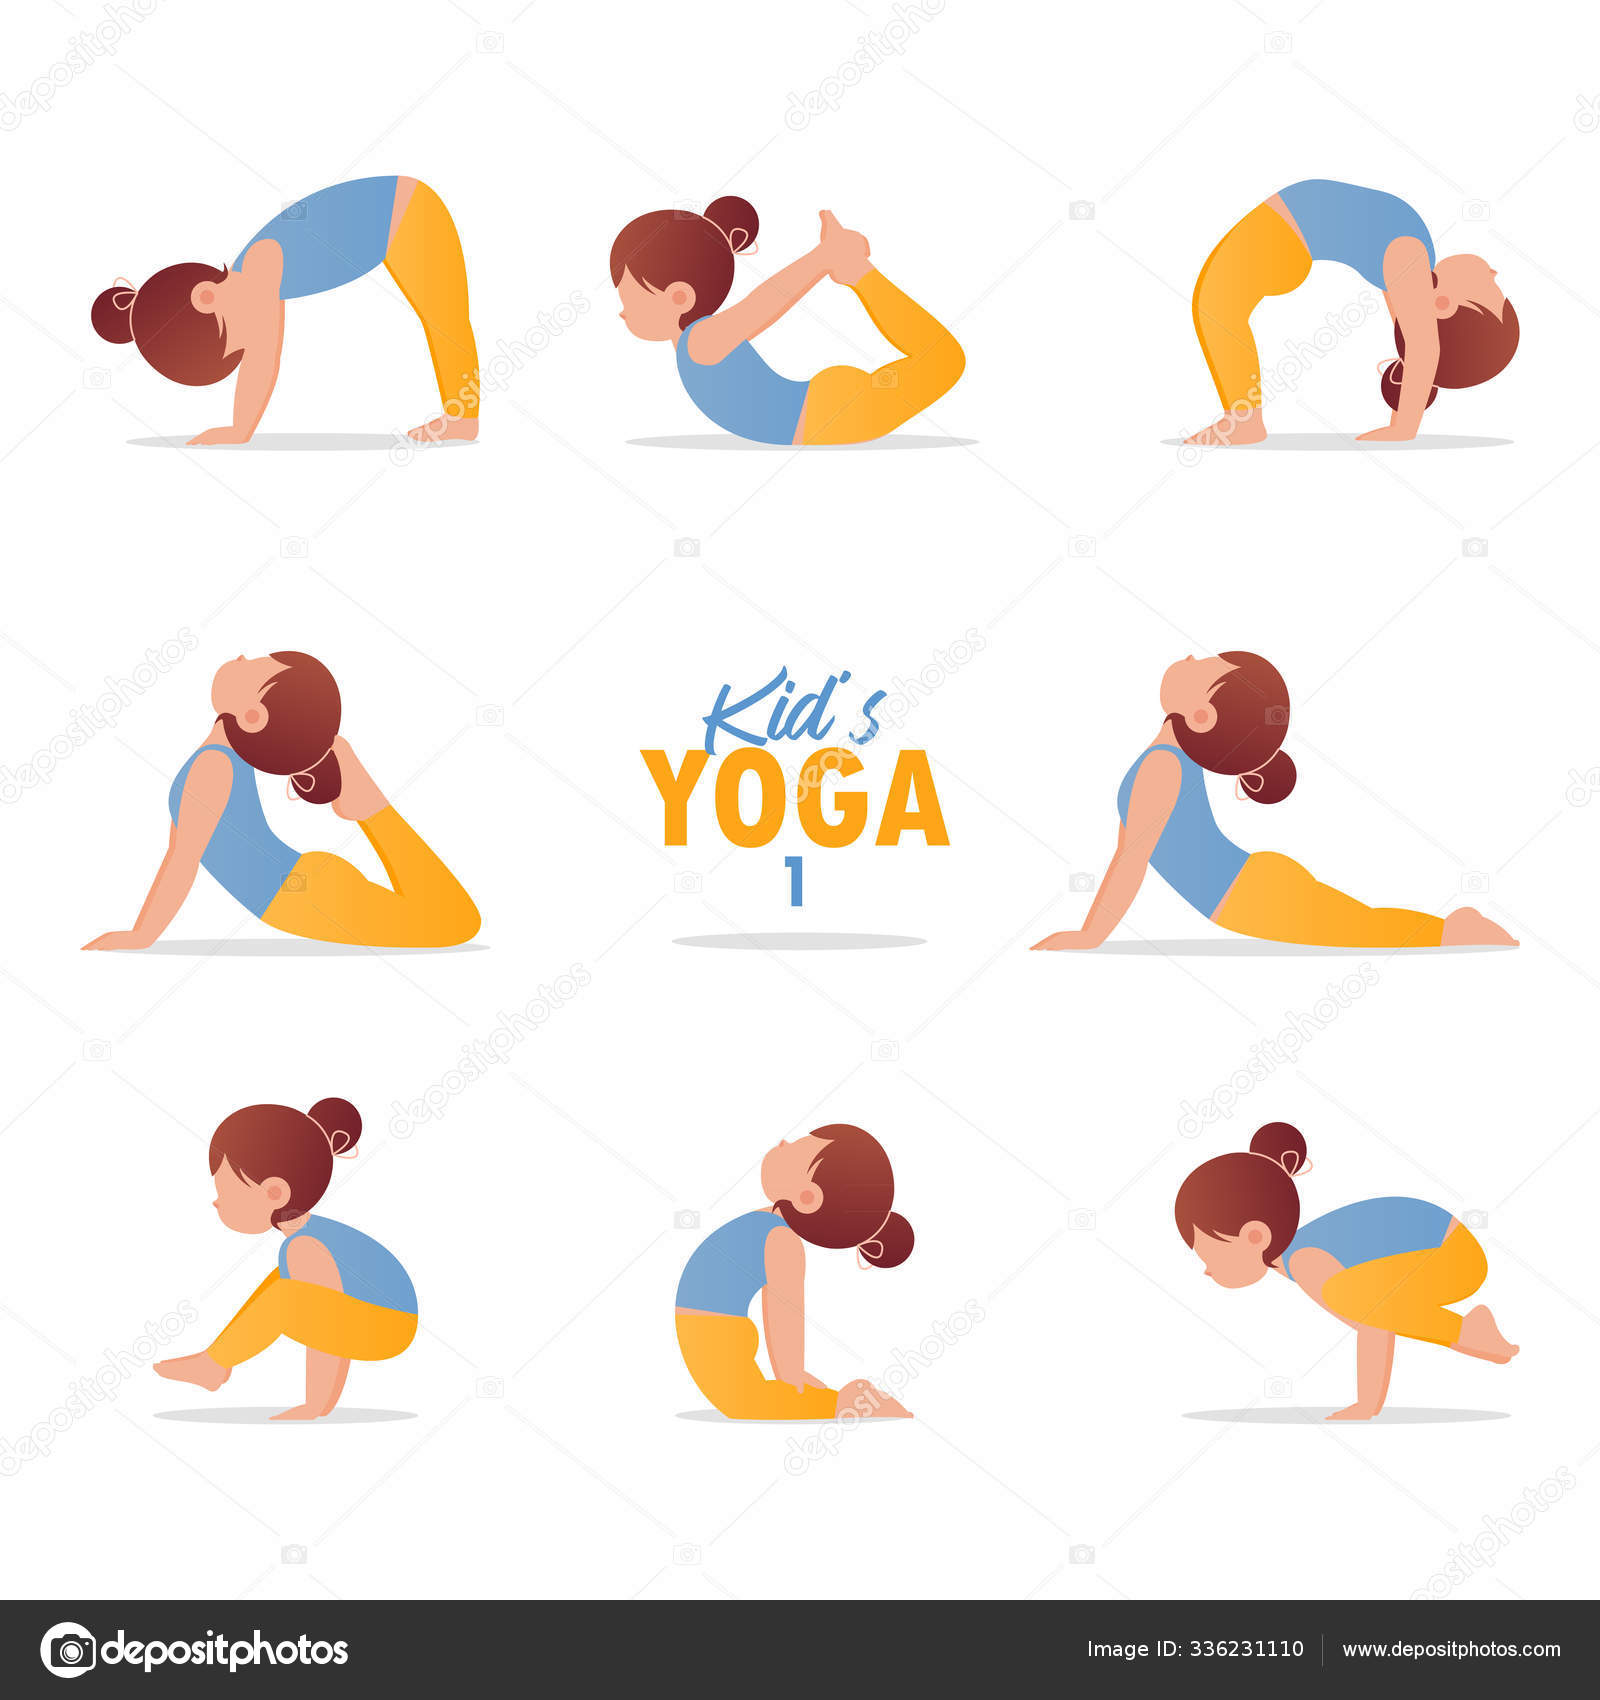 Kids Yoga Set Gymnastics For Children And Healthy Lifestyle Cartoon Kids In Different Yoga Poses Vector Art And Illustration Stock Vector C Tond Ruangwit Gmail Com 336231110